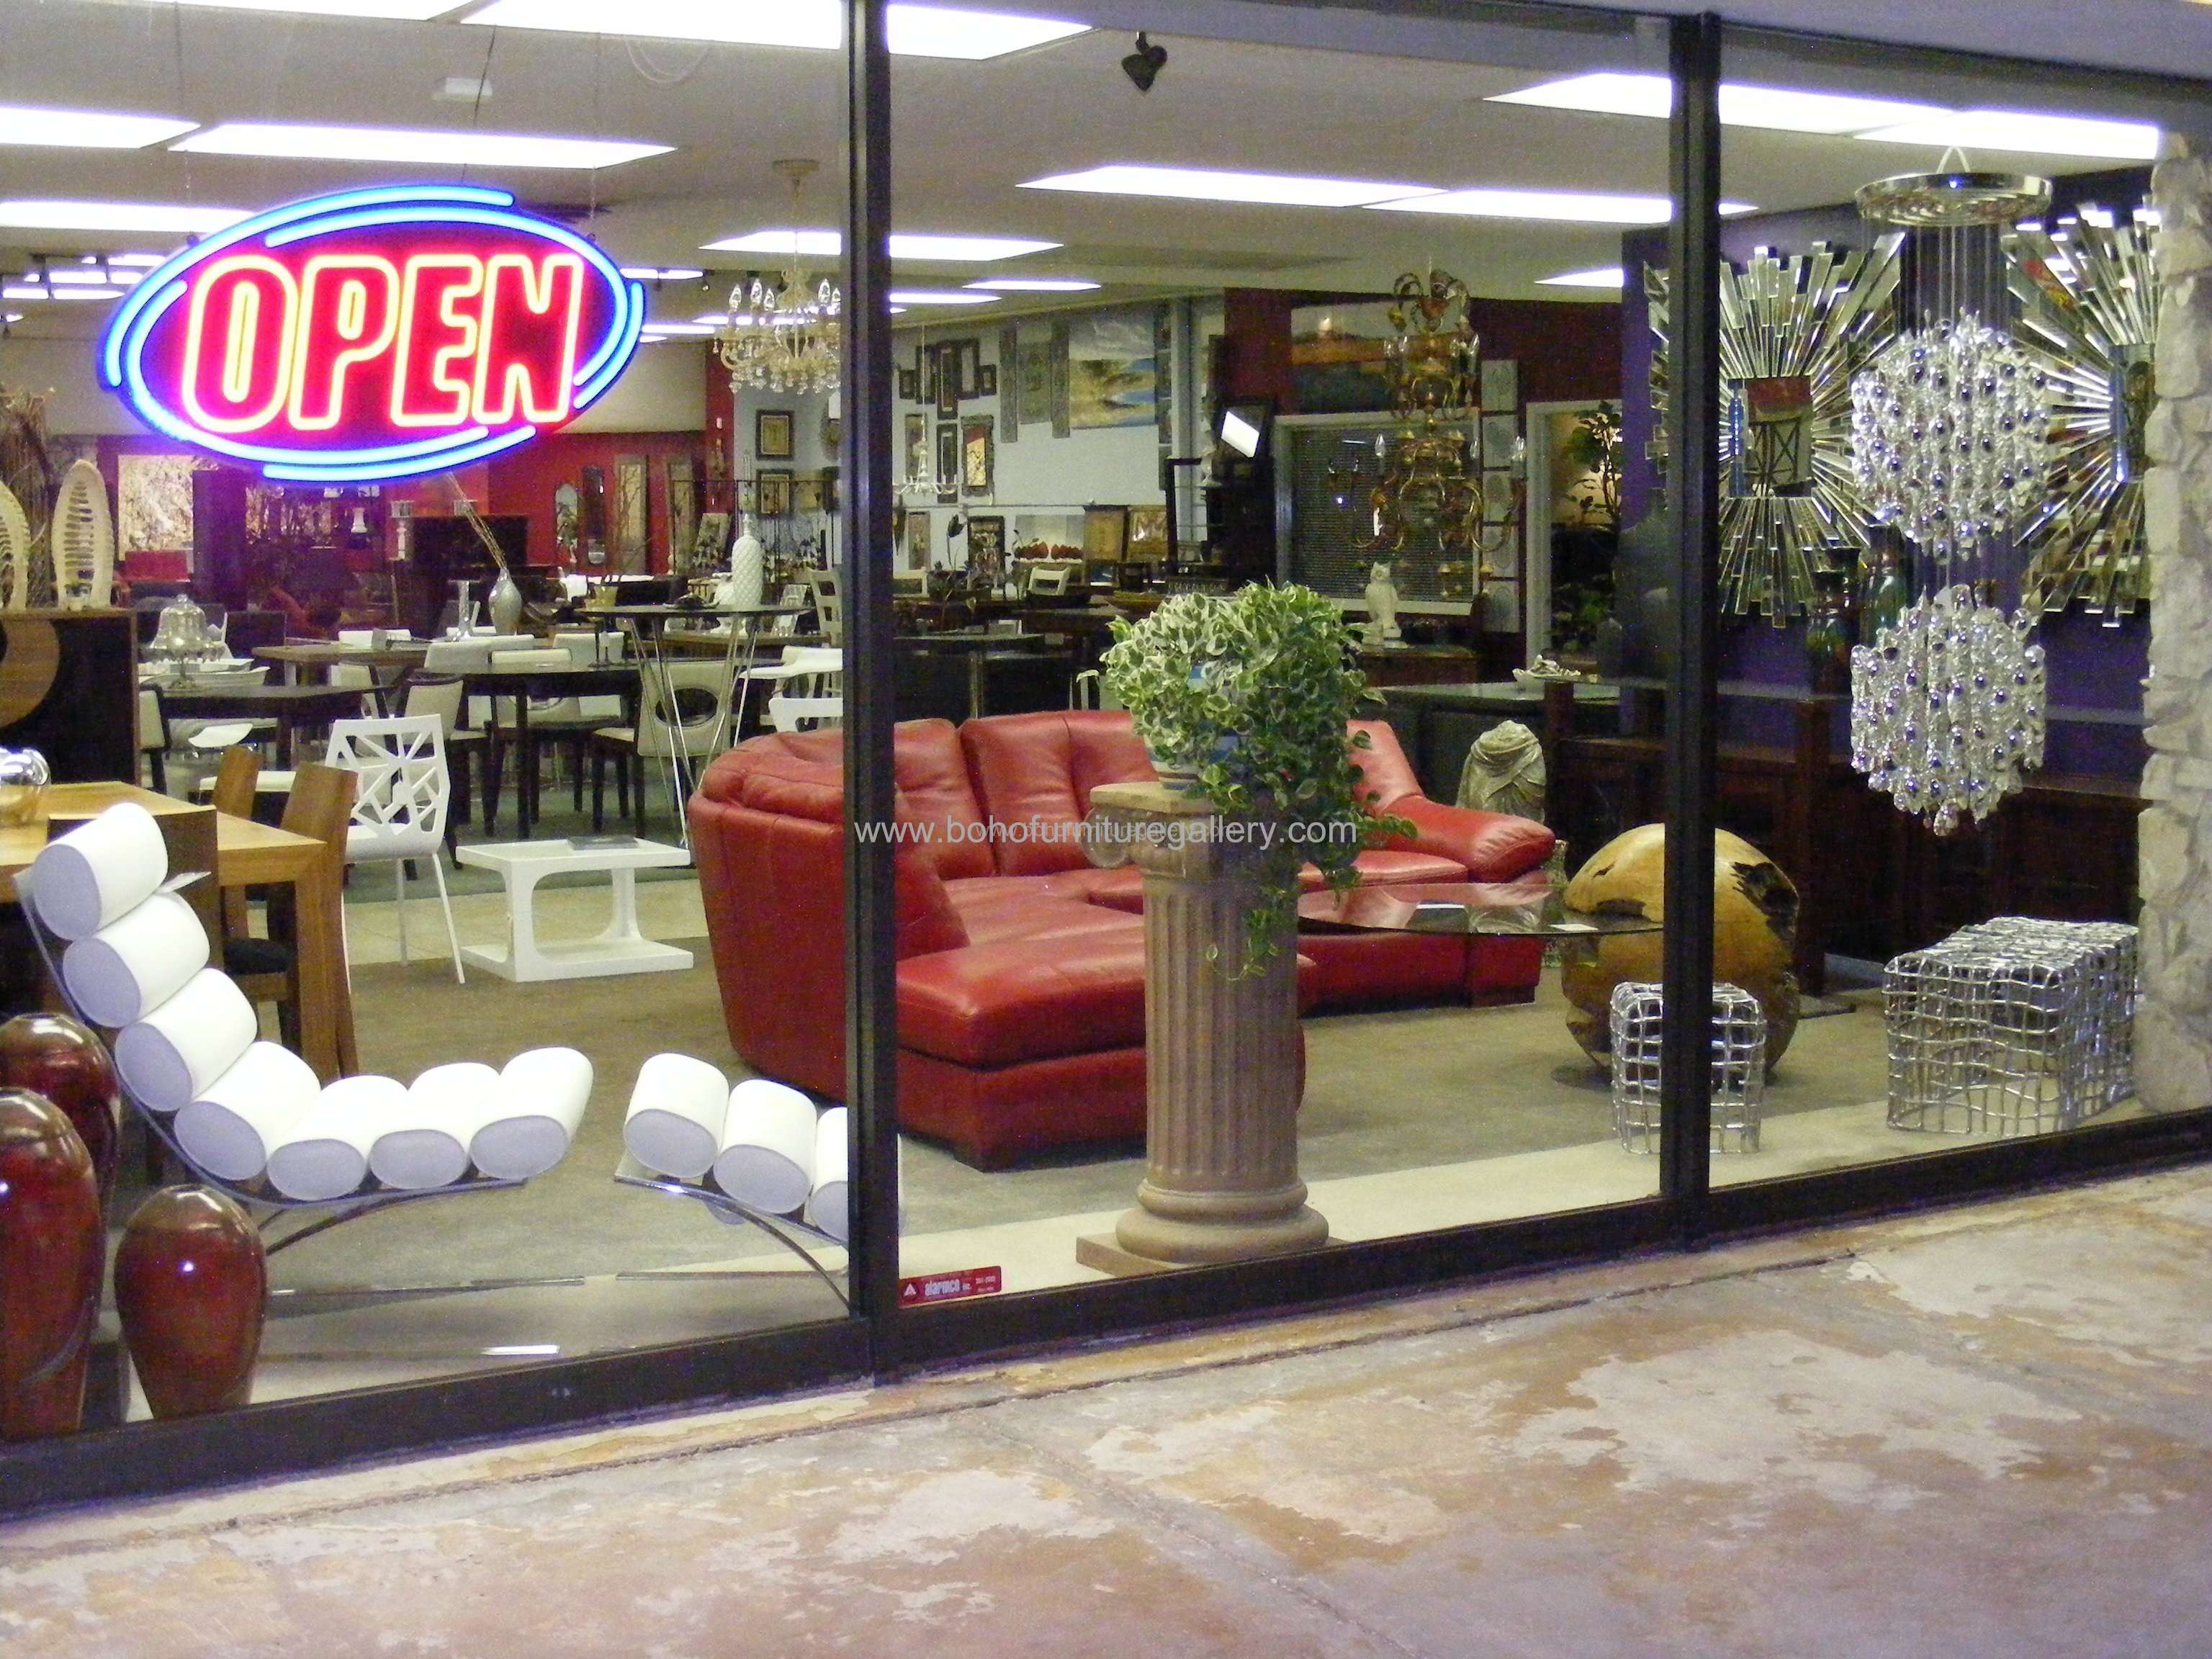 Boho Furniture Gallery In Las Vegas Nv 89139